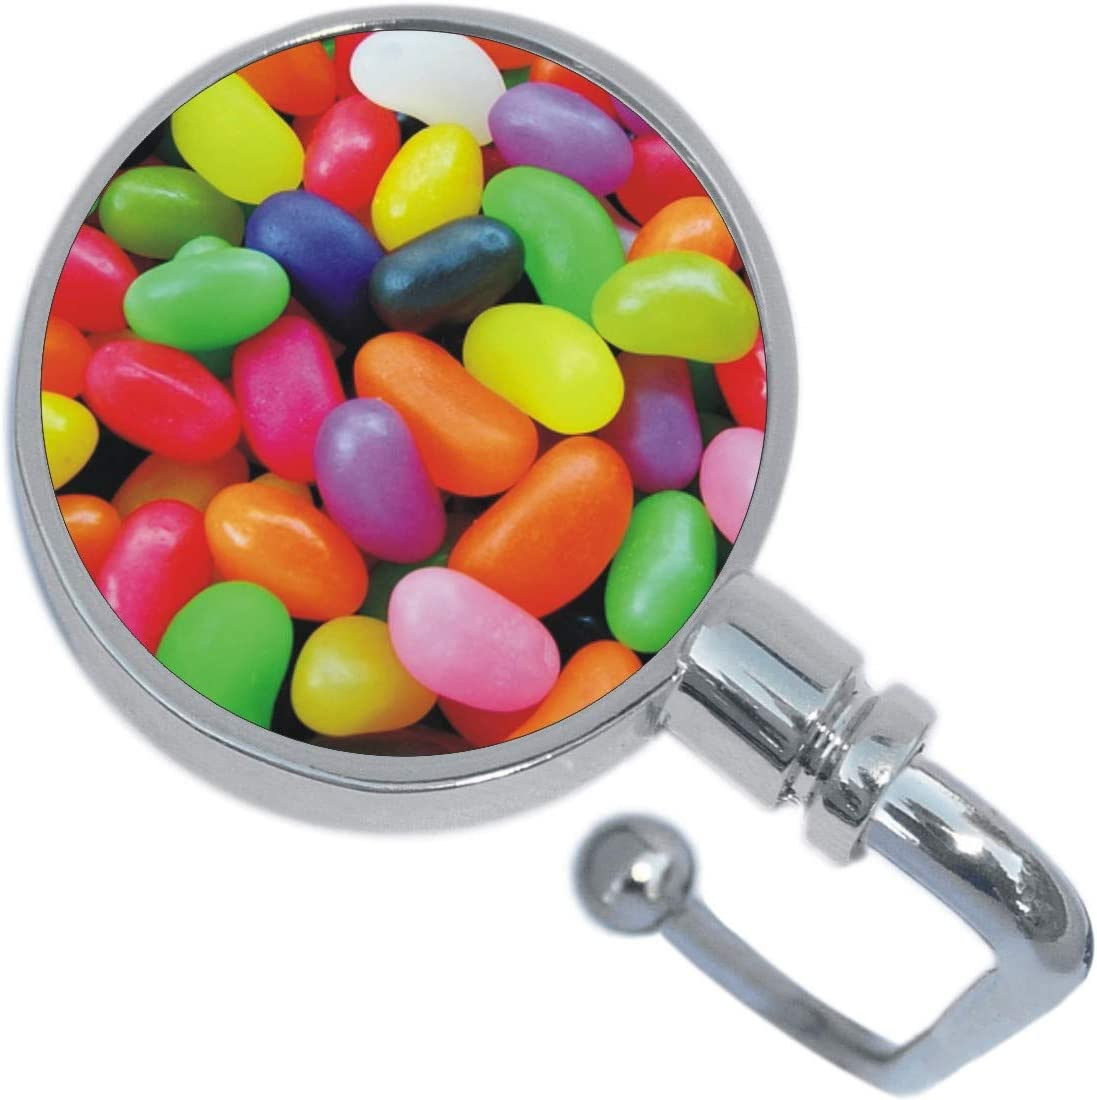 Colorful Candy Jellybeans latest Purse Hanger Max 67% OFF